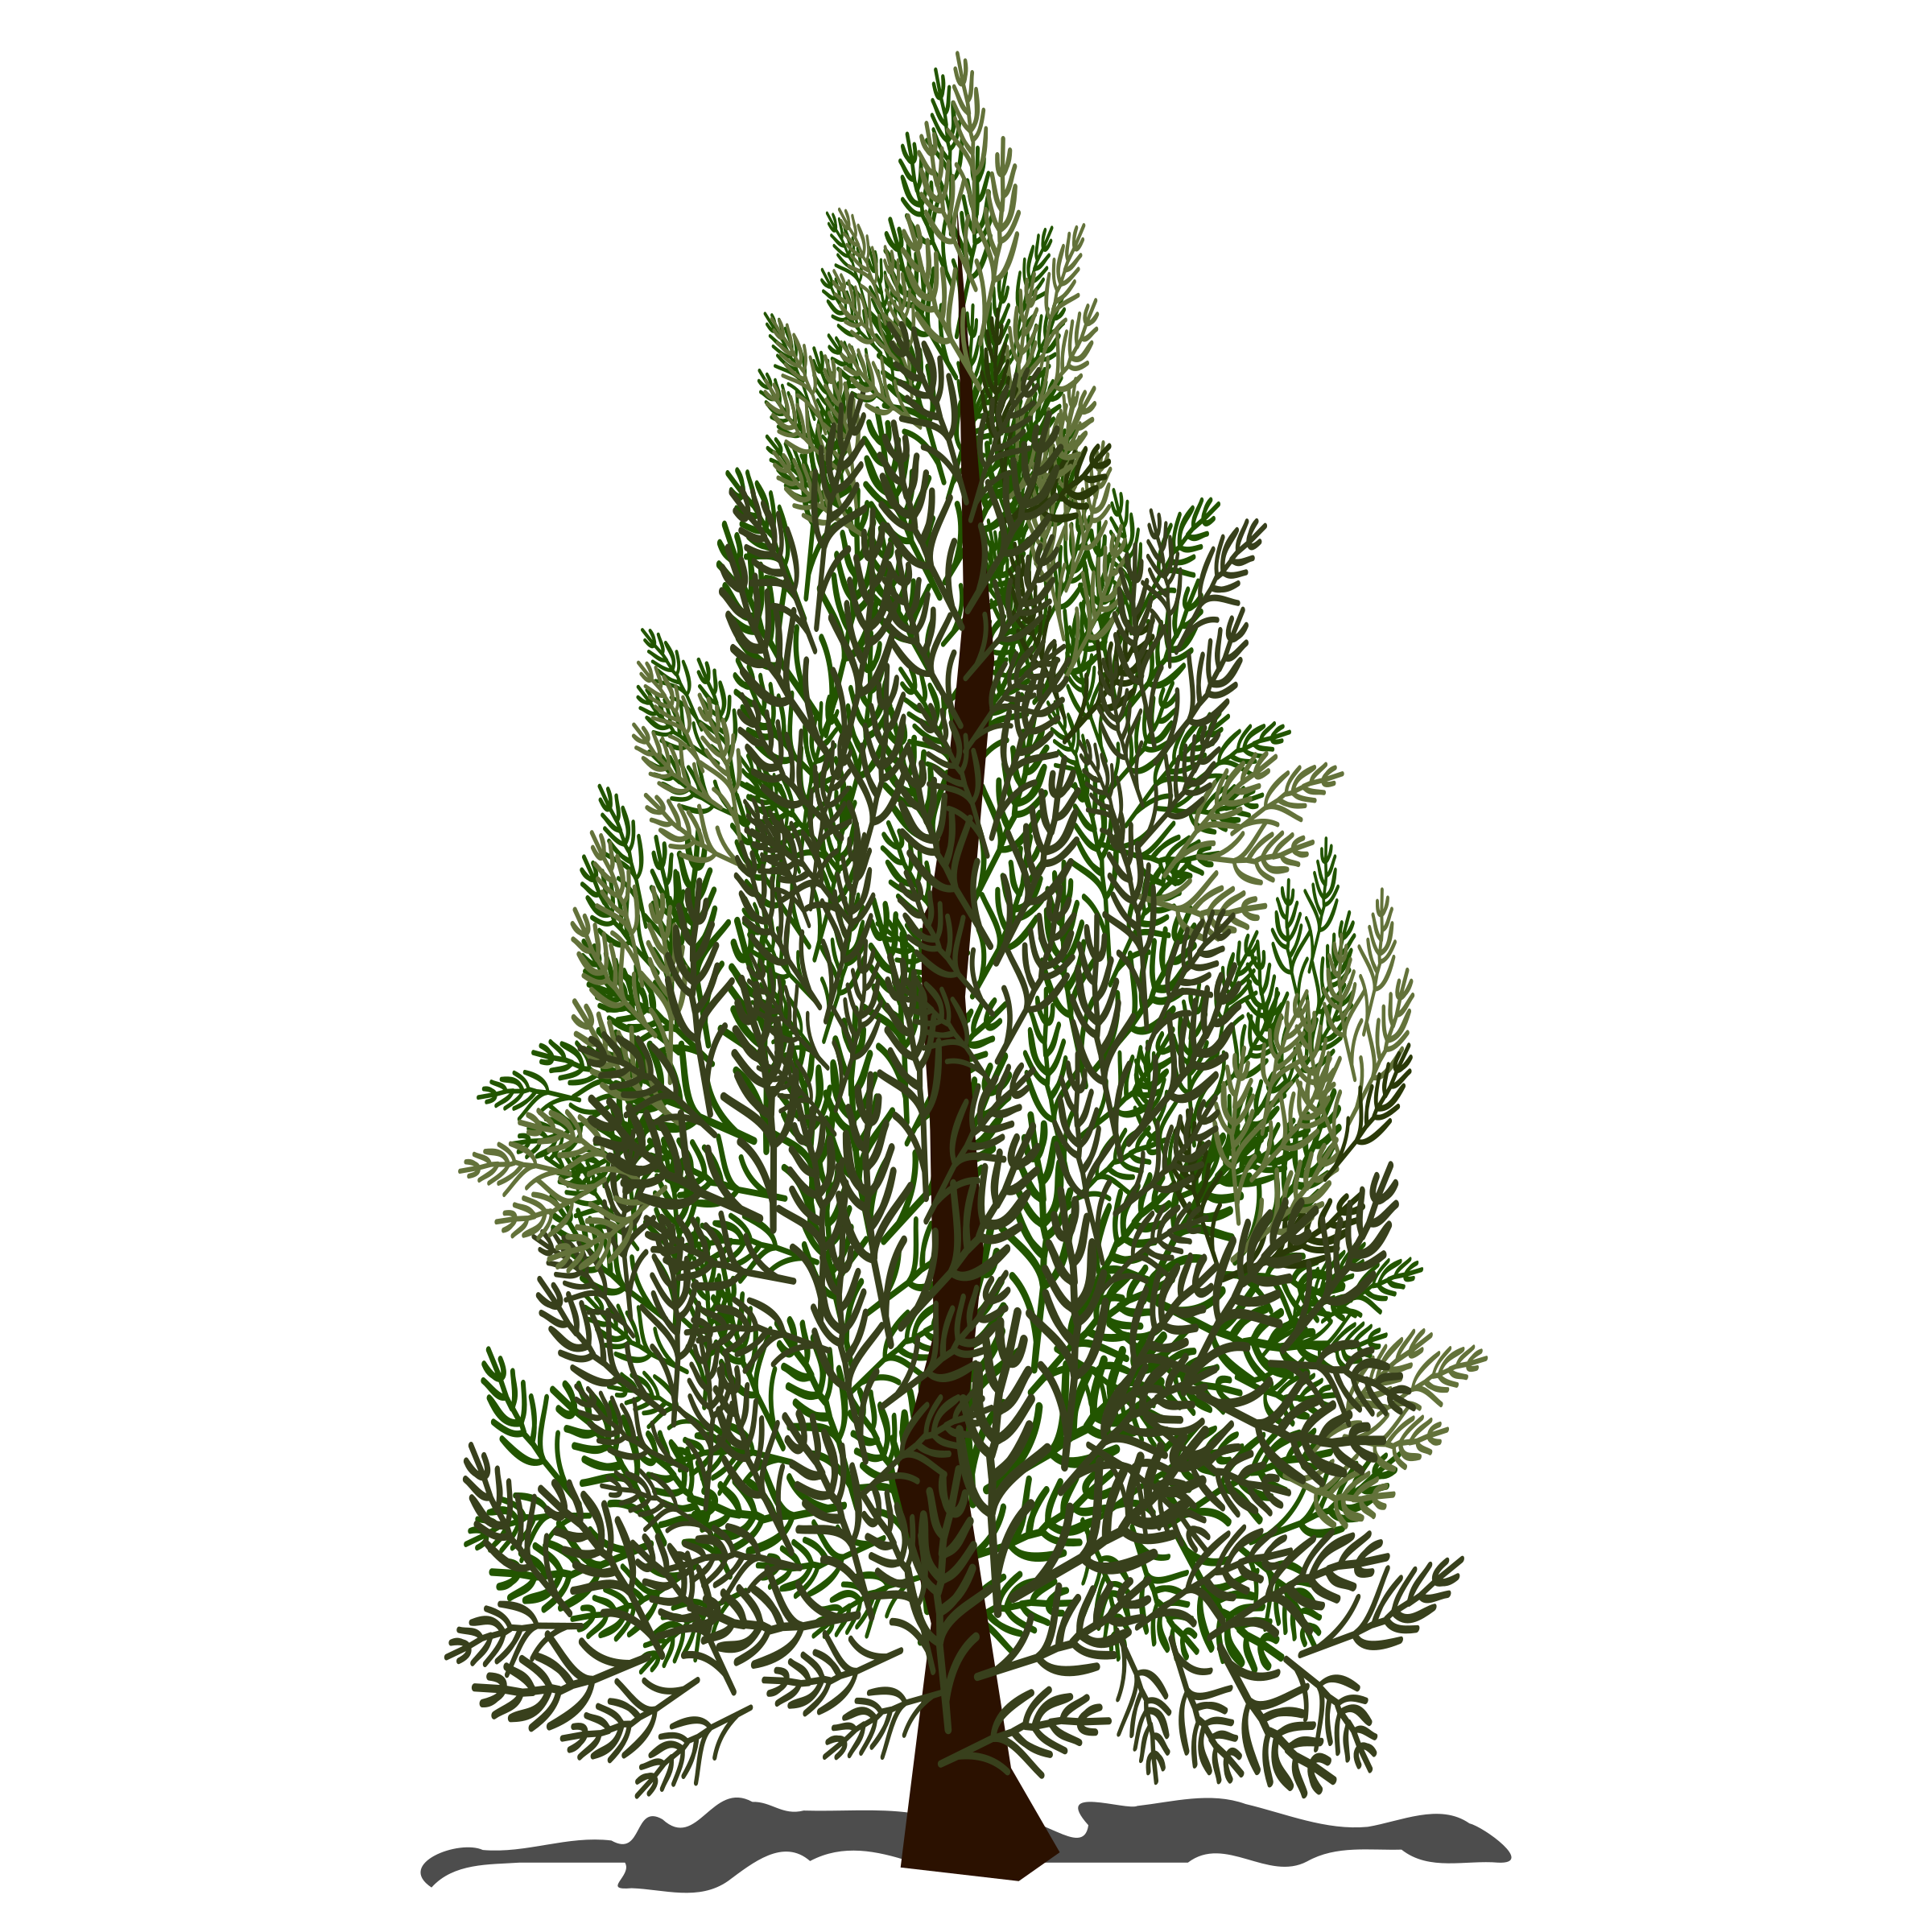 Clipart - Pine tree clipart freeuse stock